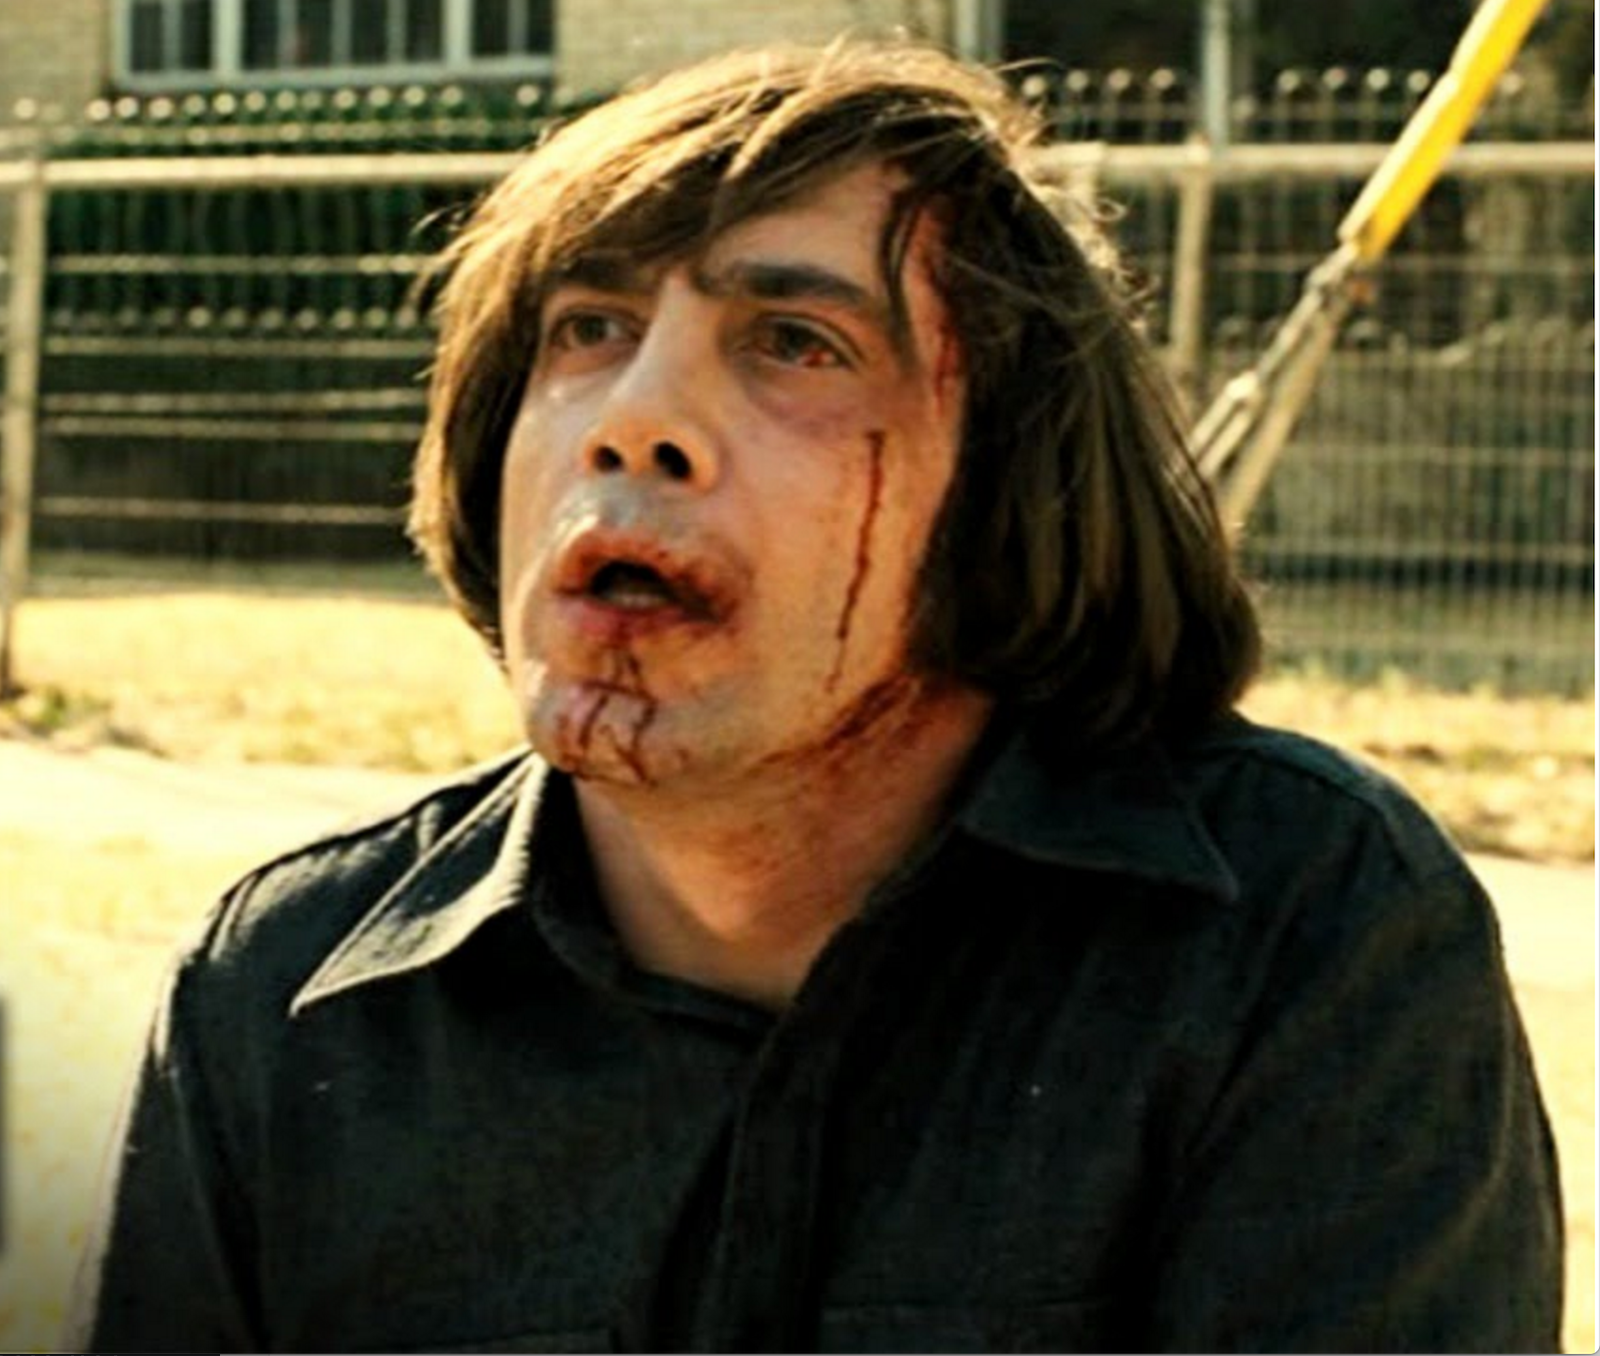 no country for old men the book film and meaning of bell s screen shot 2015 12 20 at 7 15 25 pm